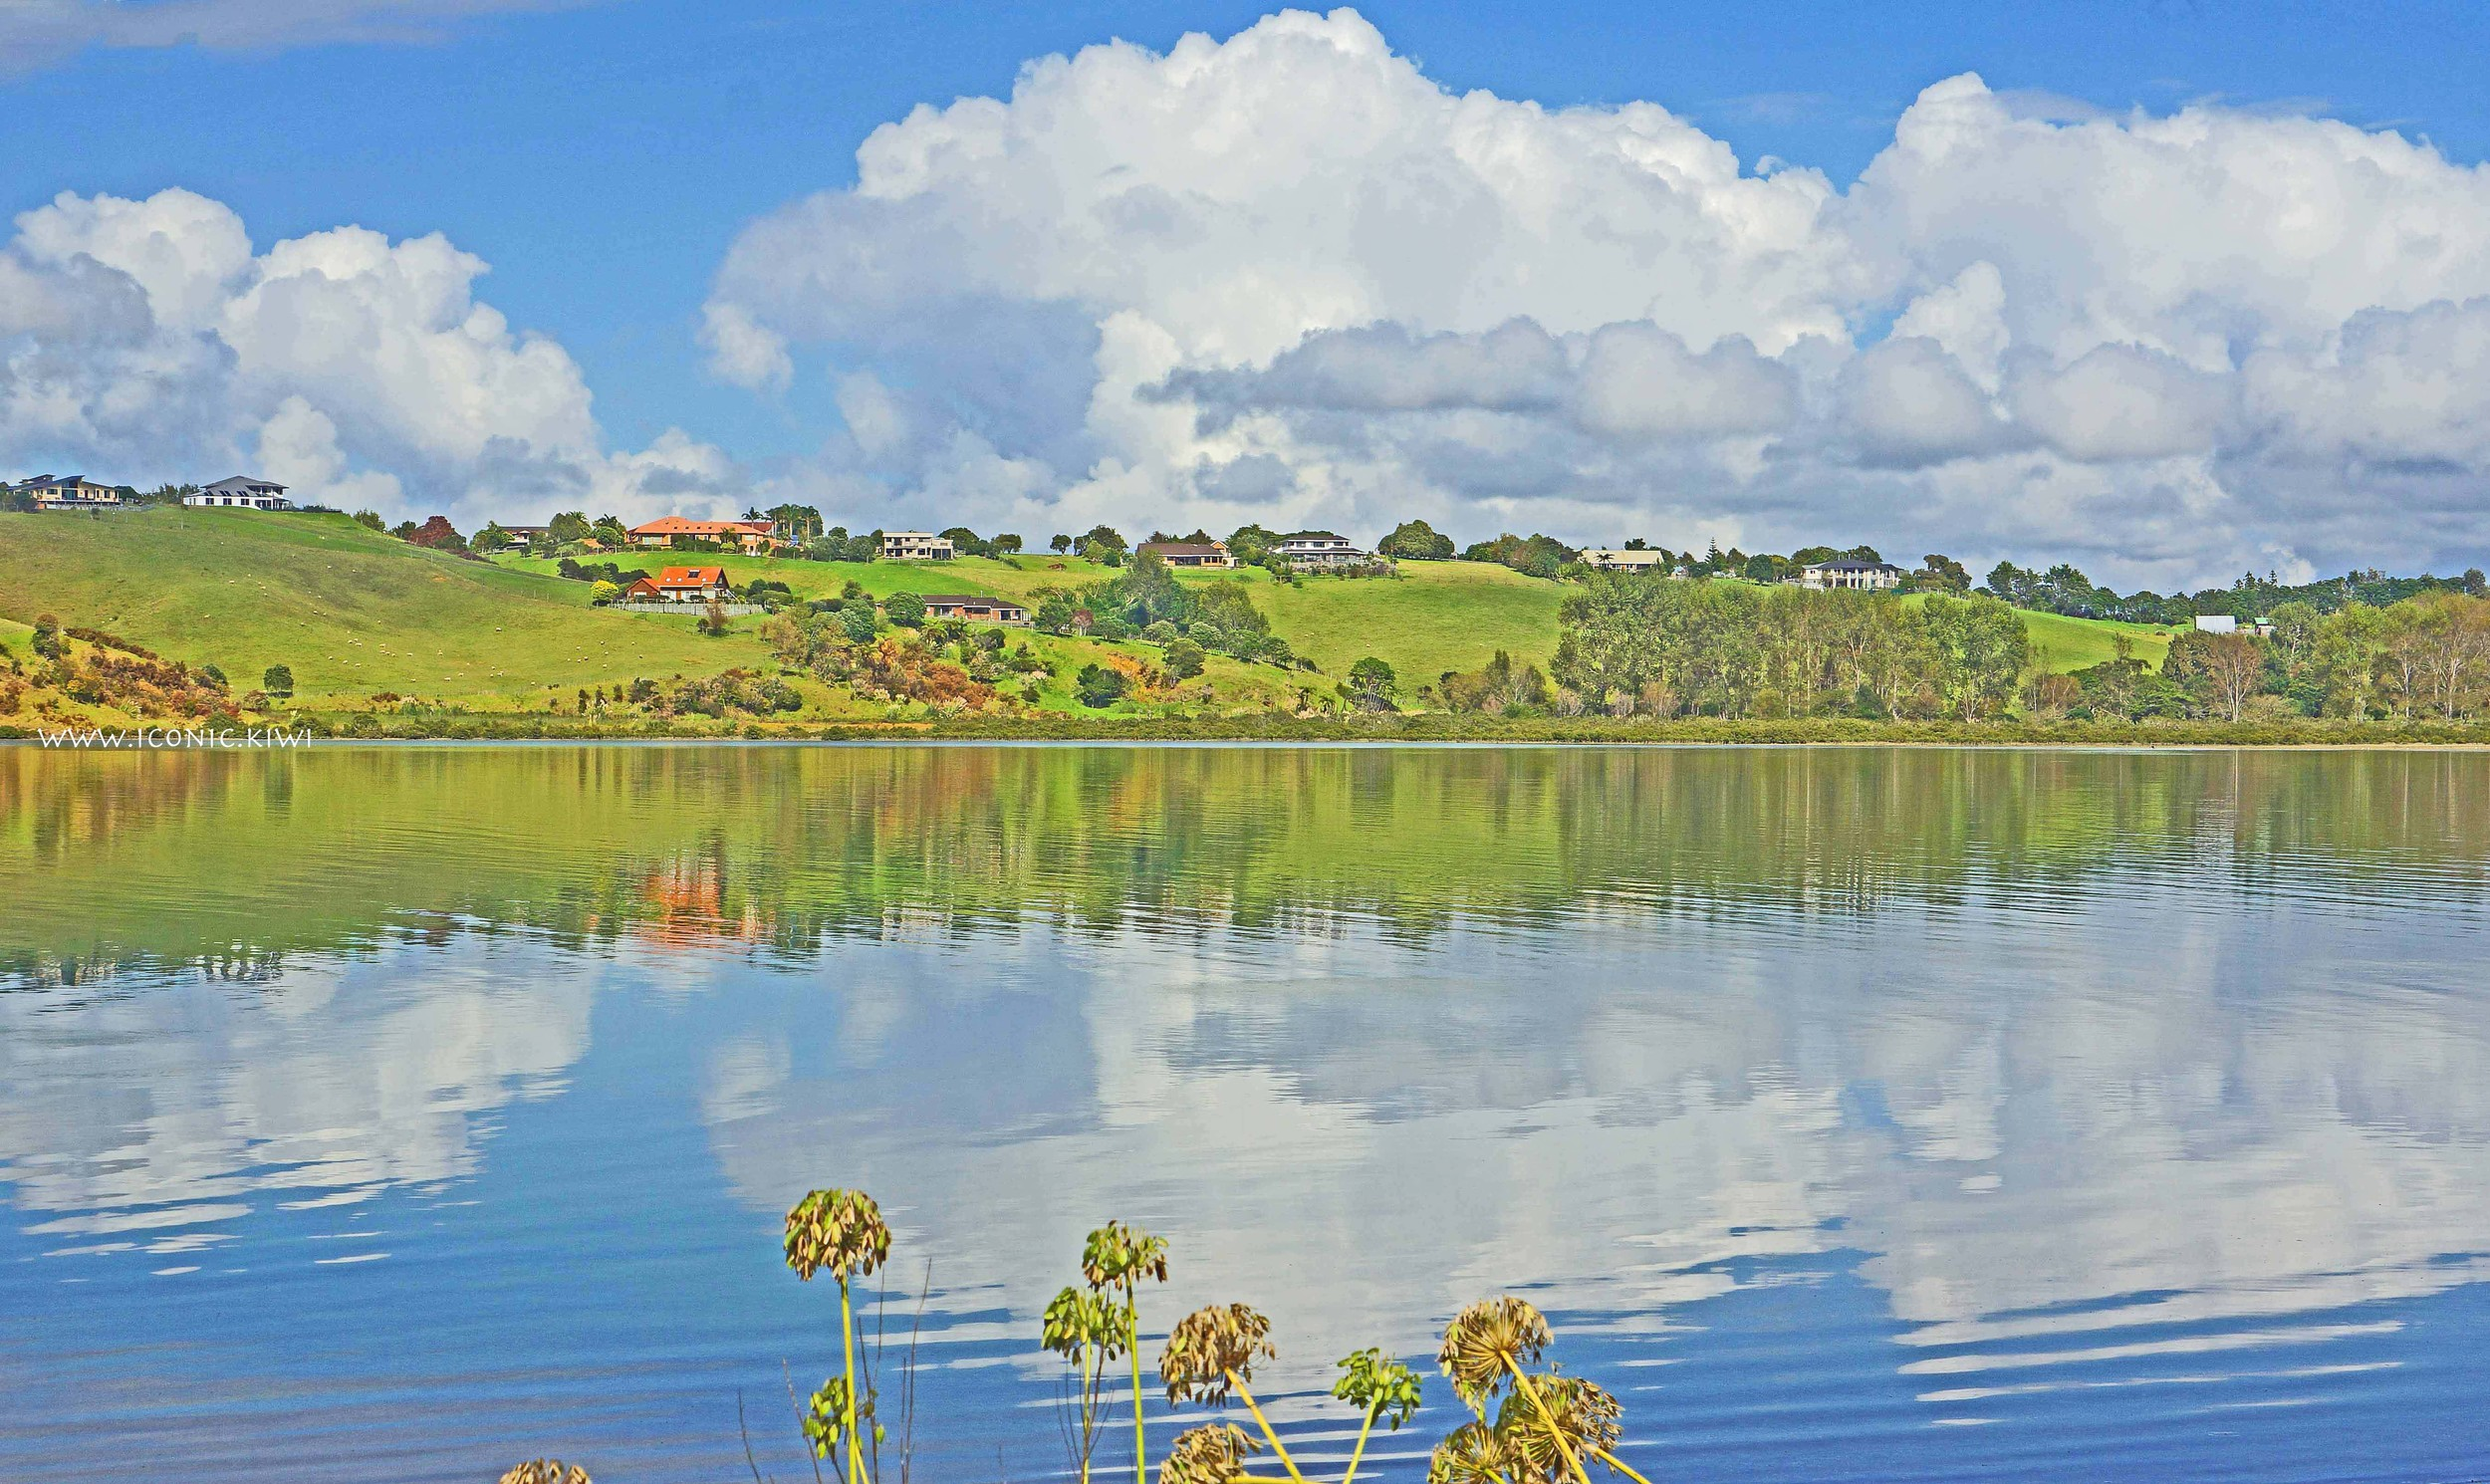 Cloud reflections, Whangarei Harbour, Northland